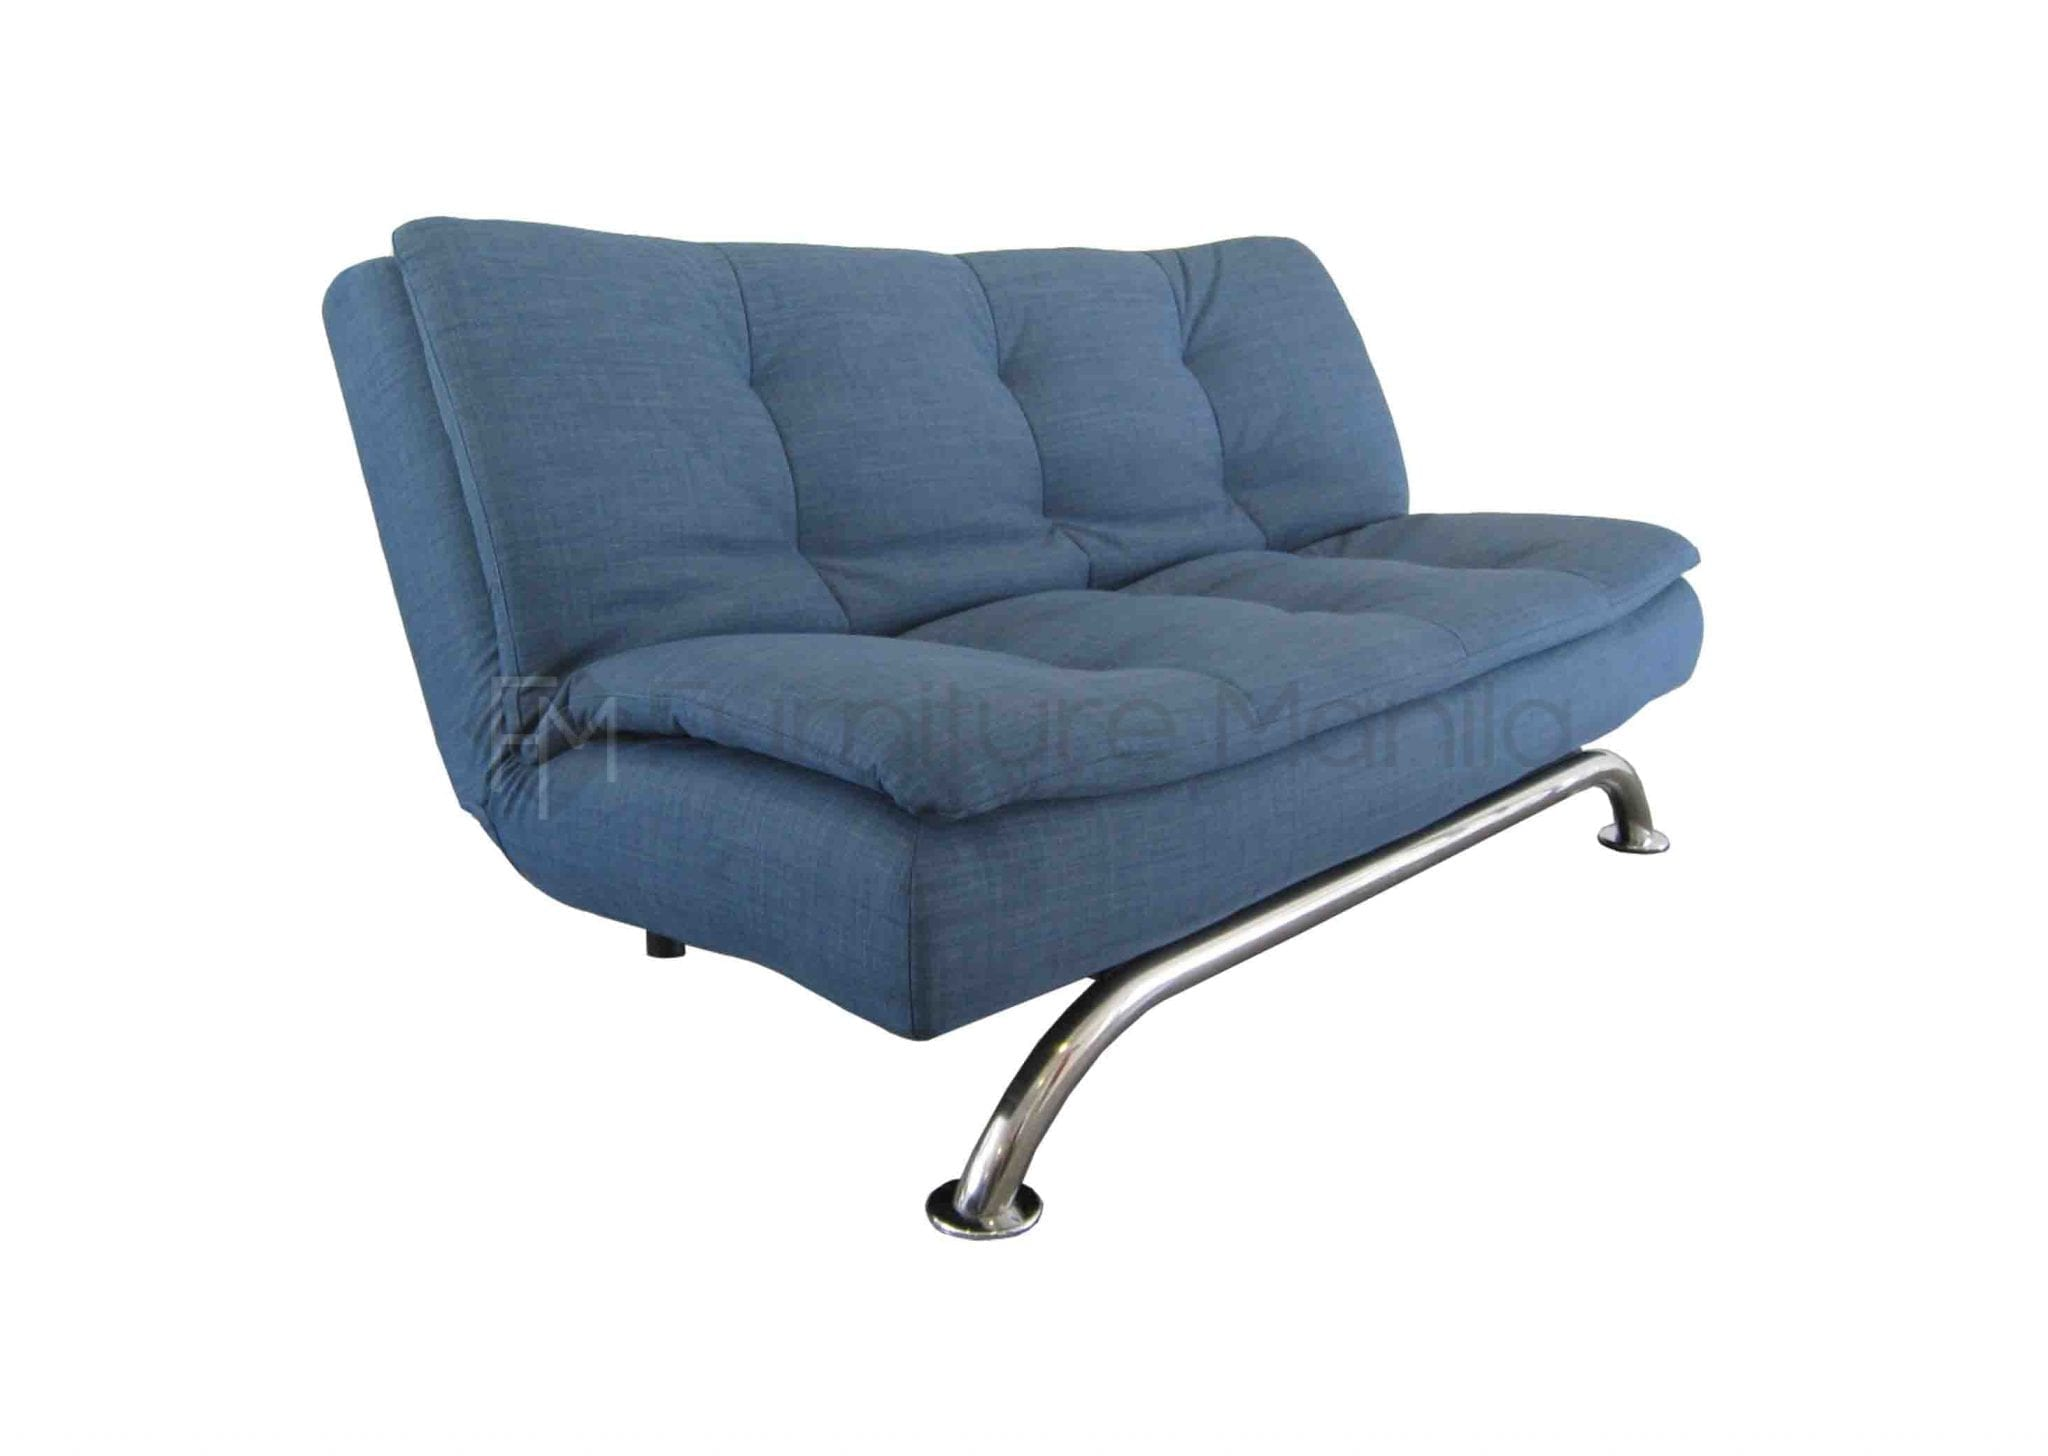 Related of uratex sofa bed price list - Add To Wishlist Loading